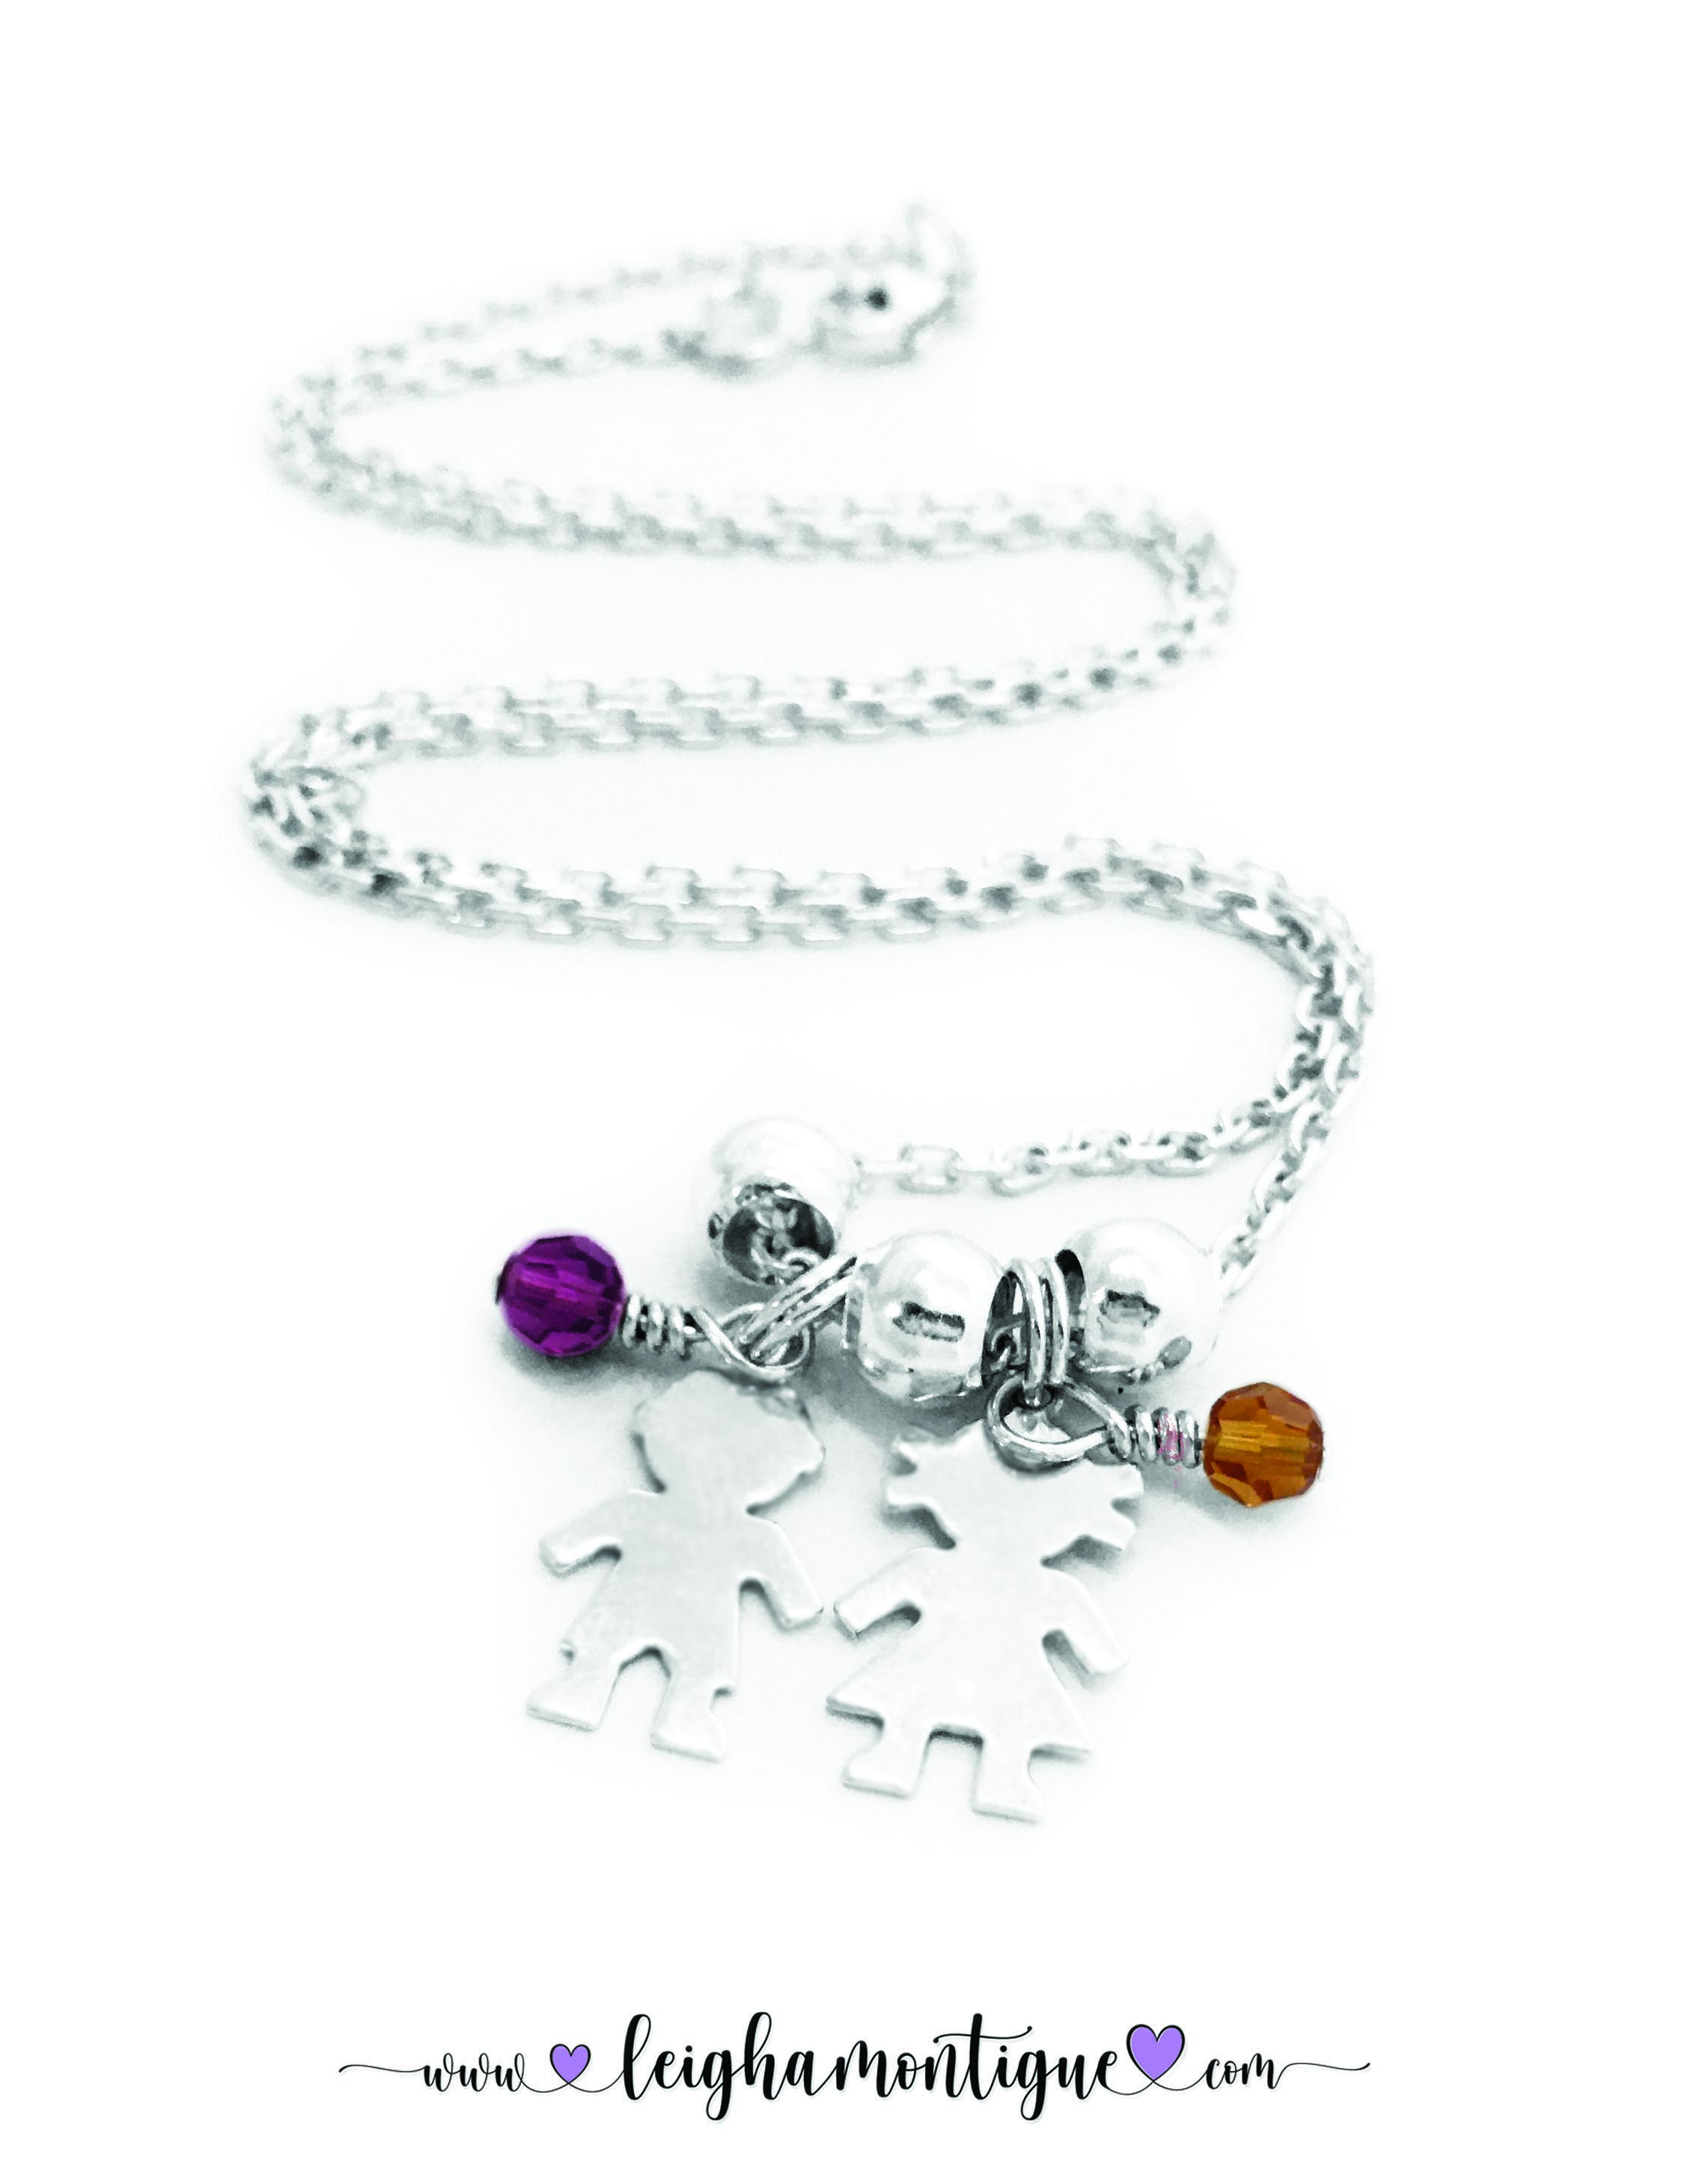 Girl Charm & Boy Charm with Birthstones DBL-BN-N6-2Ccharms  Little Boy Charm and Little Girl Charms with their birthstones (February or Amethyst and November or Golden Topaz)